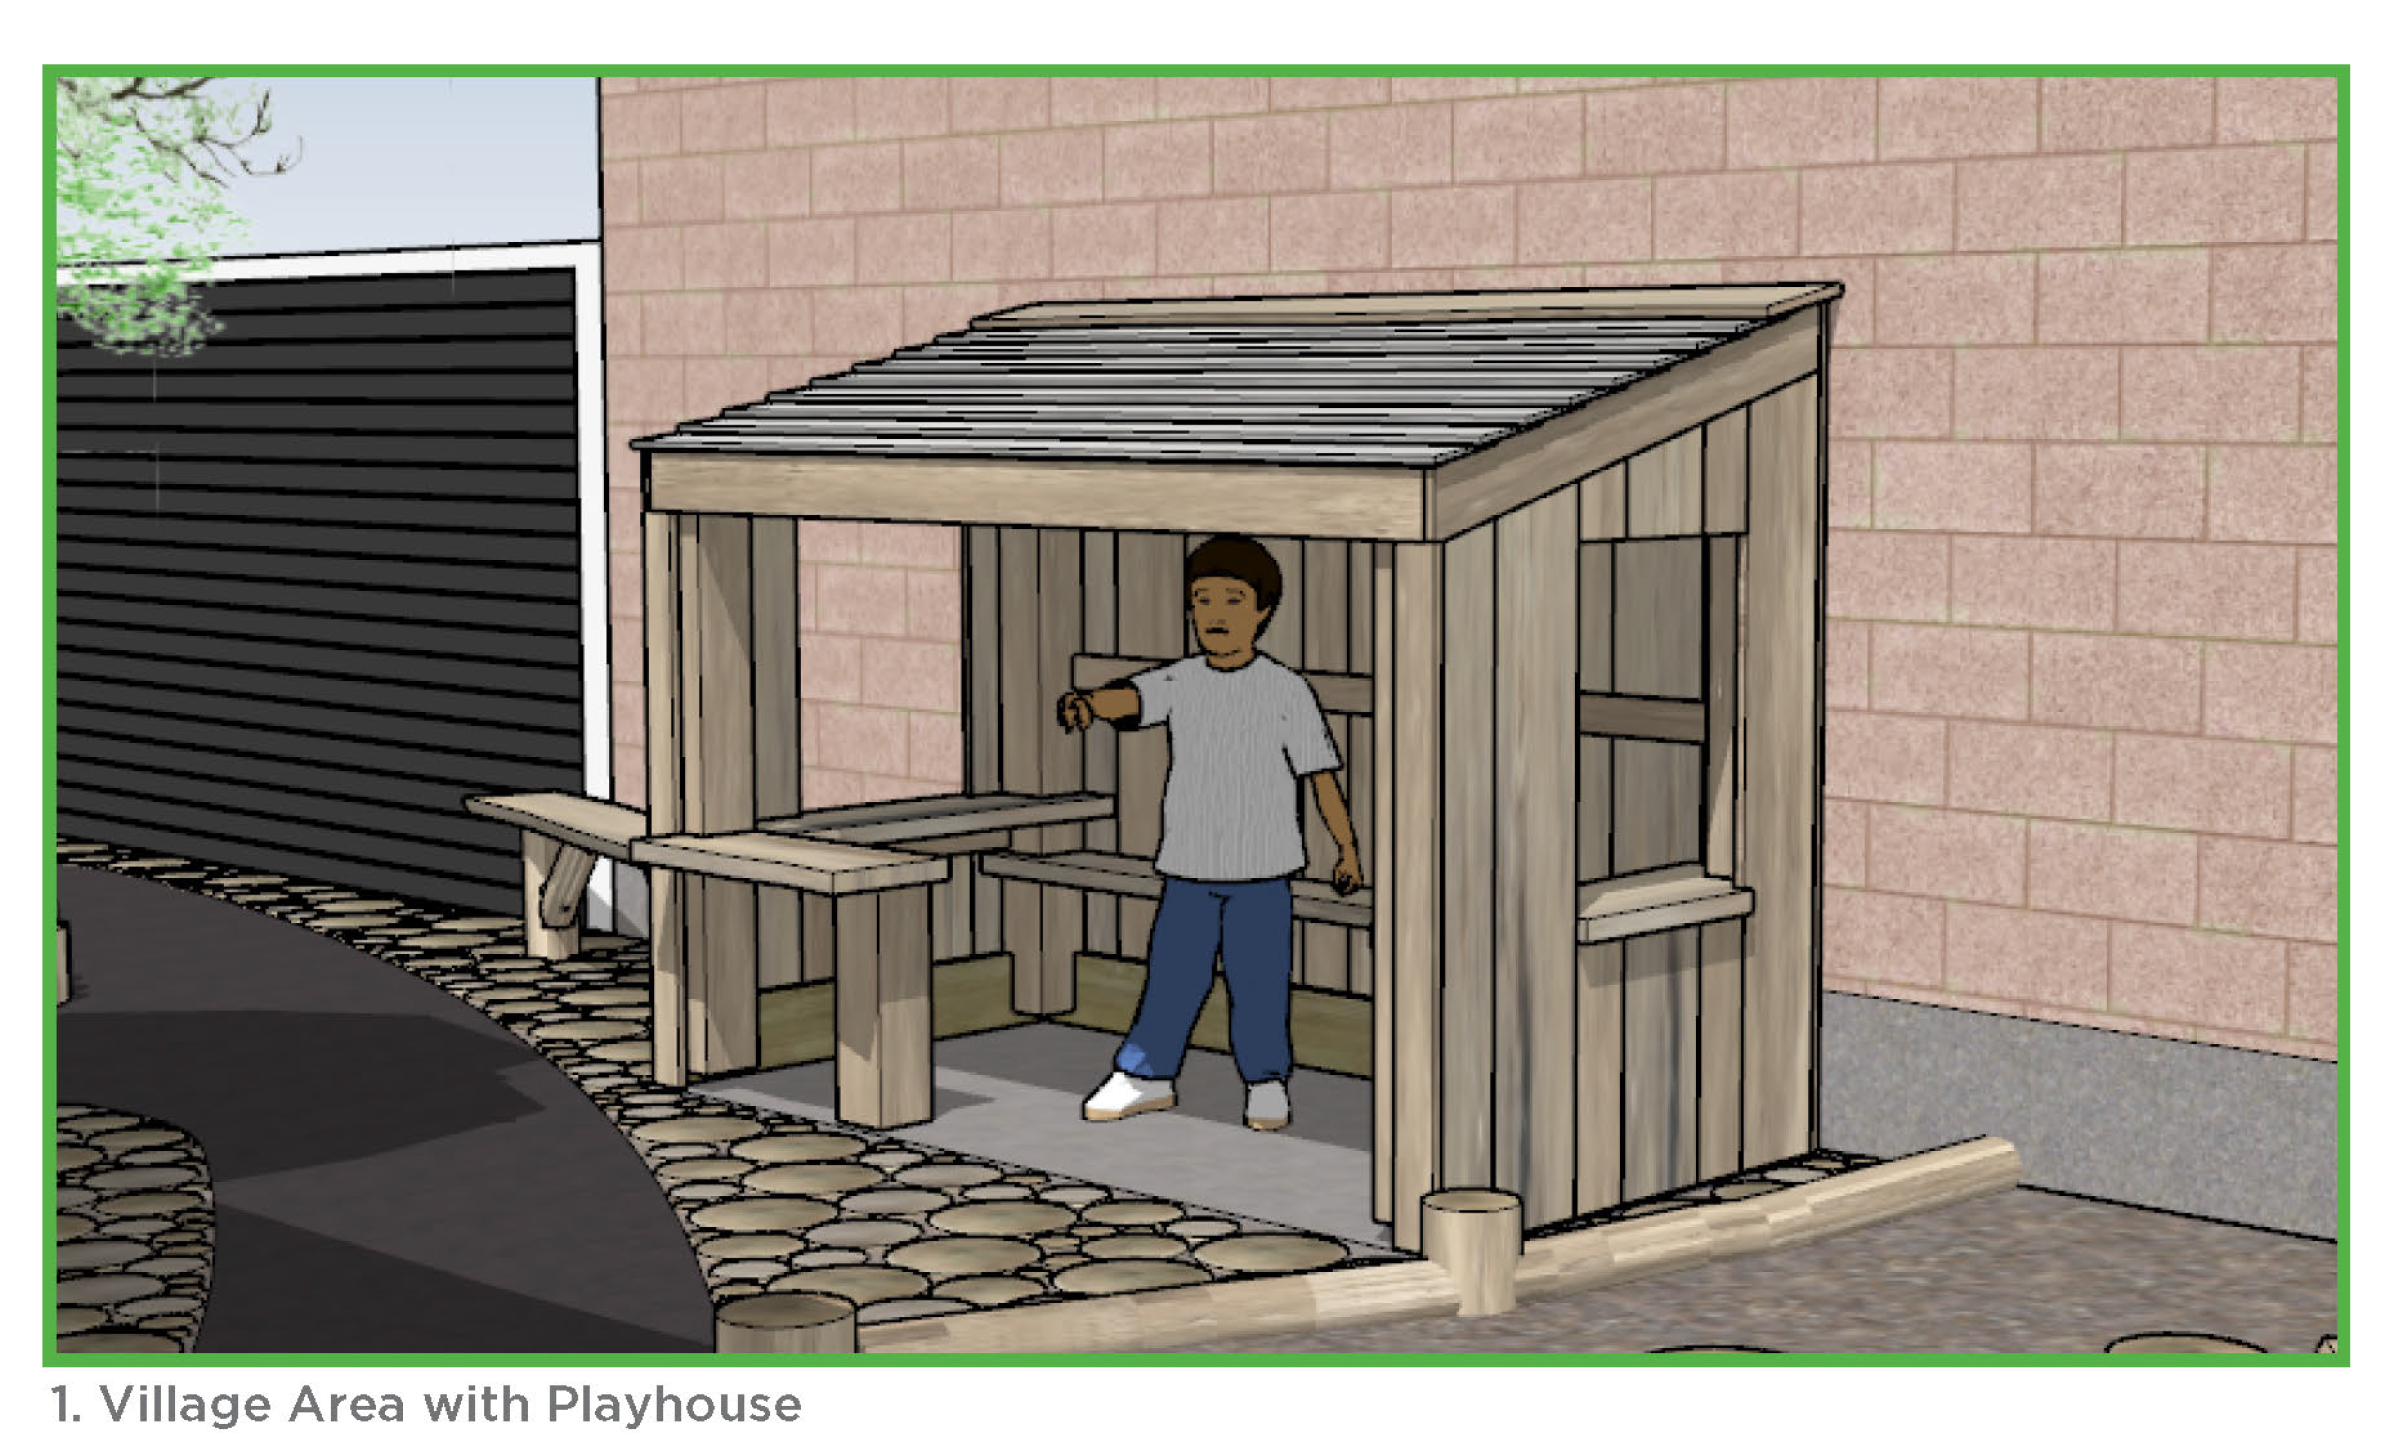 Village Area with Playhouse